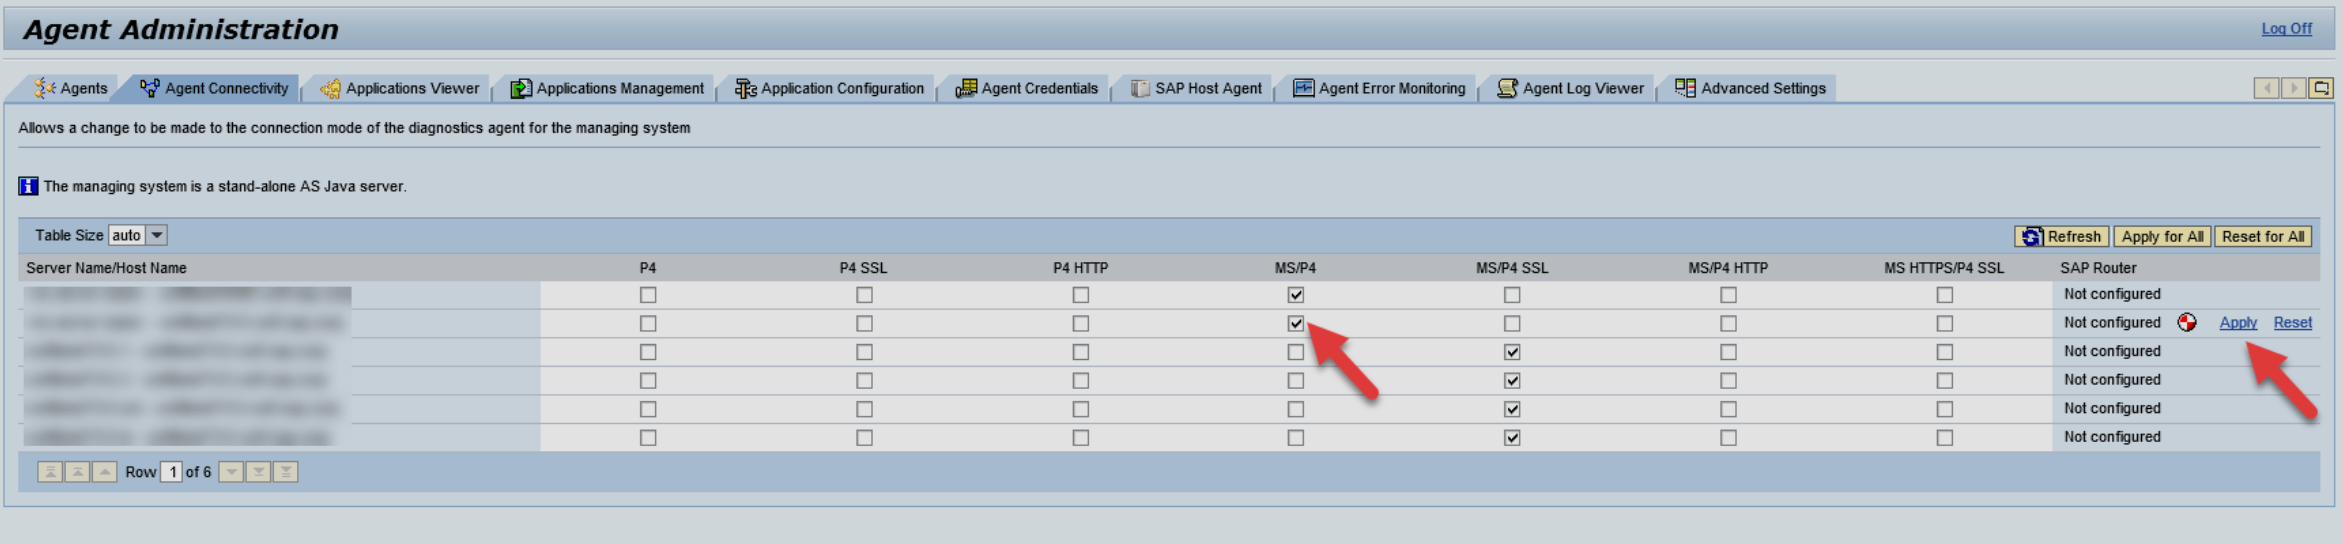 Connectivity in solution manager 72 sap solution manager setup open the agent connectivity tab and change the check box from msp4 to msp4 ssl or vice versa for any diagnostics agent and click on apply 1betcityfo Images